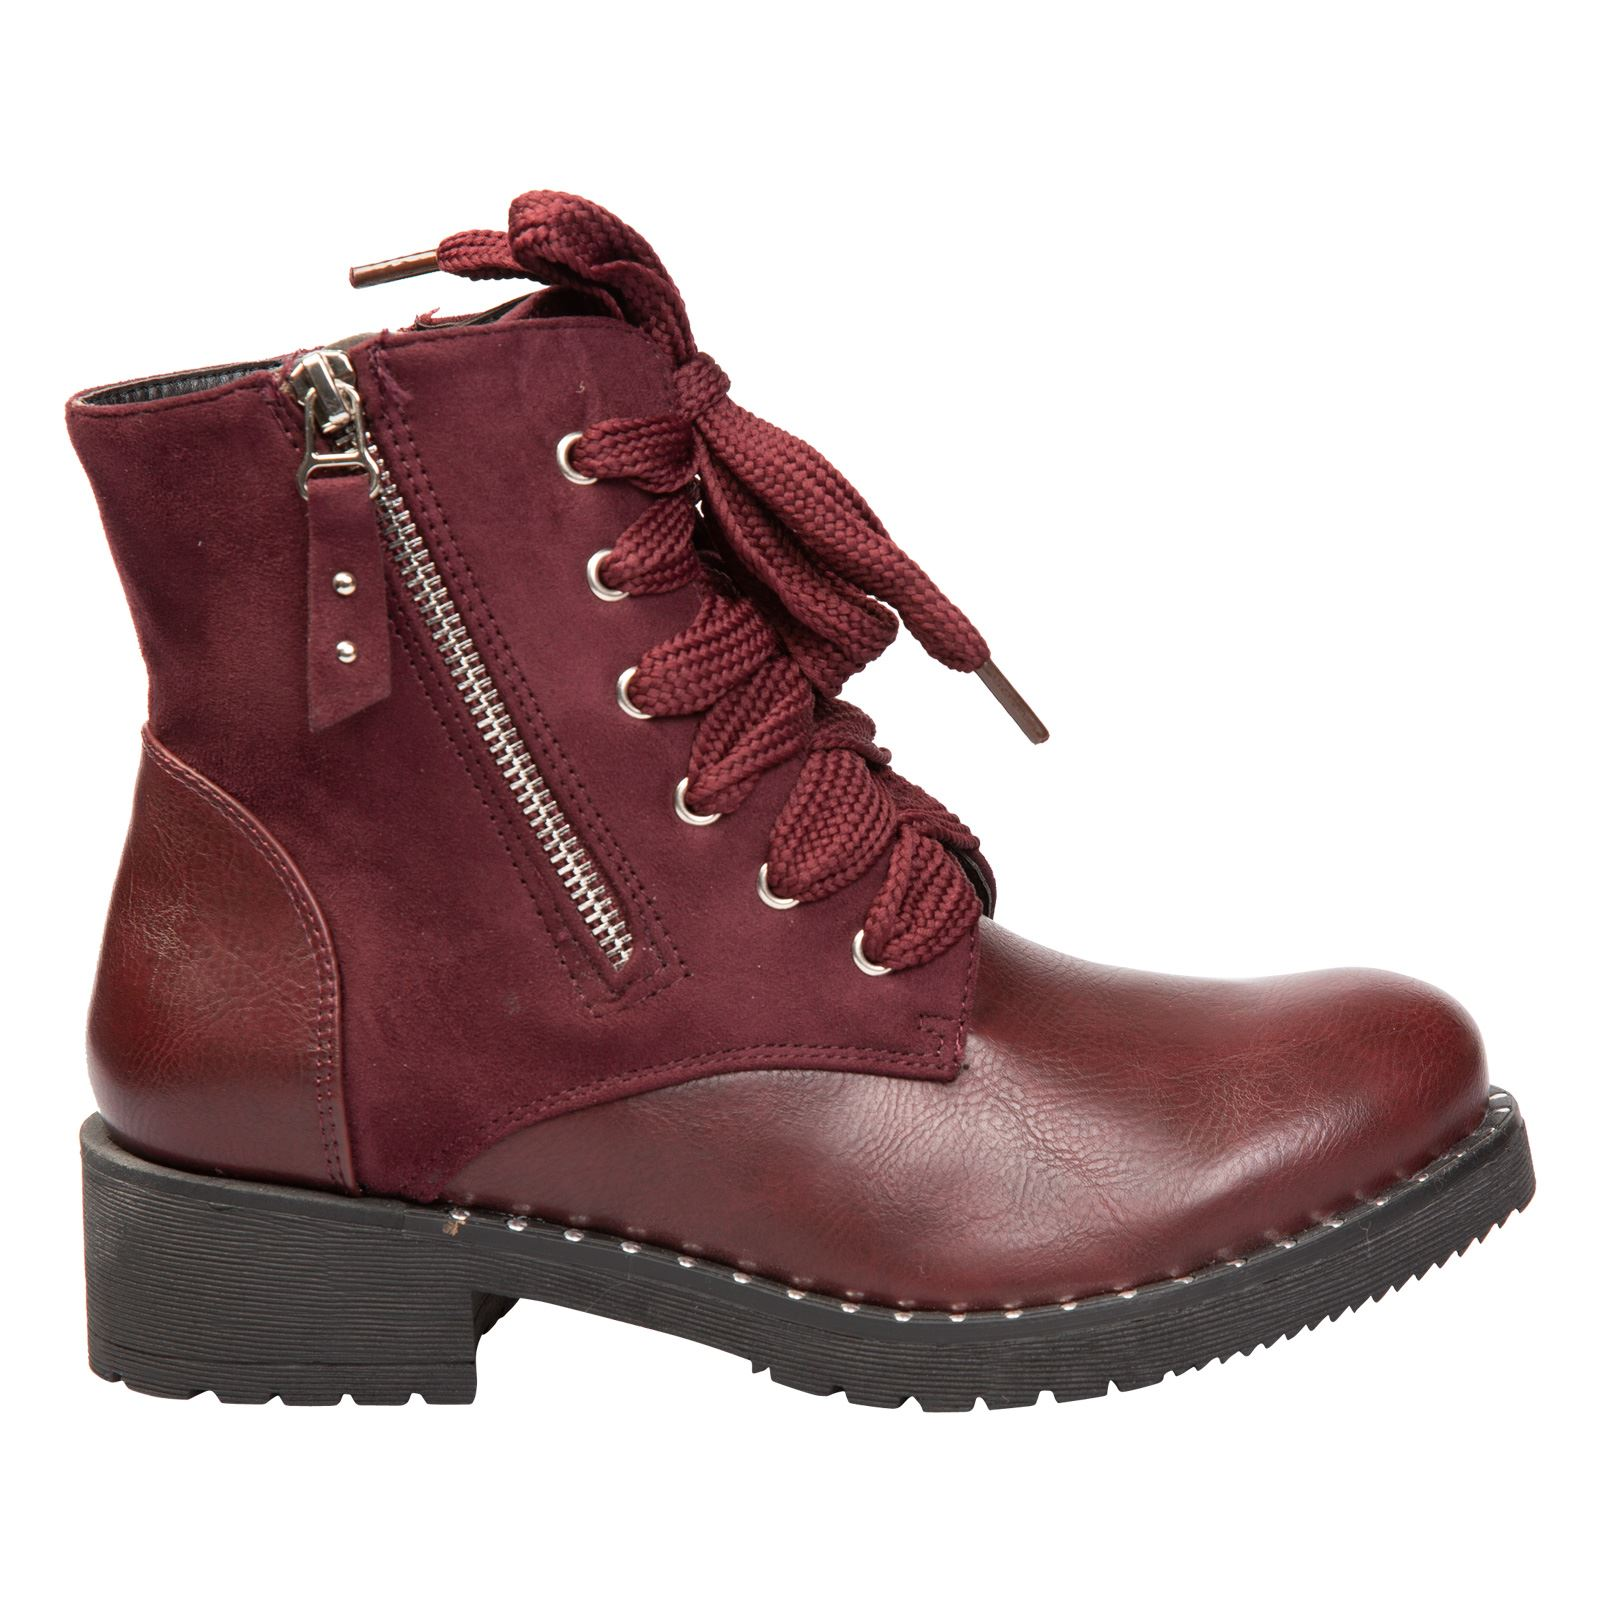 3580b7a442 Parker Womens Low Heel Chunky Biker Combat Ankle Boots Ladies Shoes ...